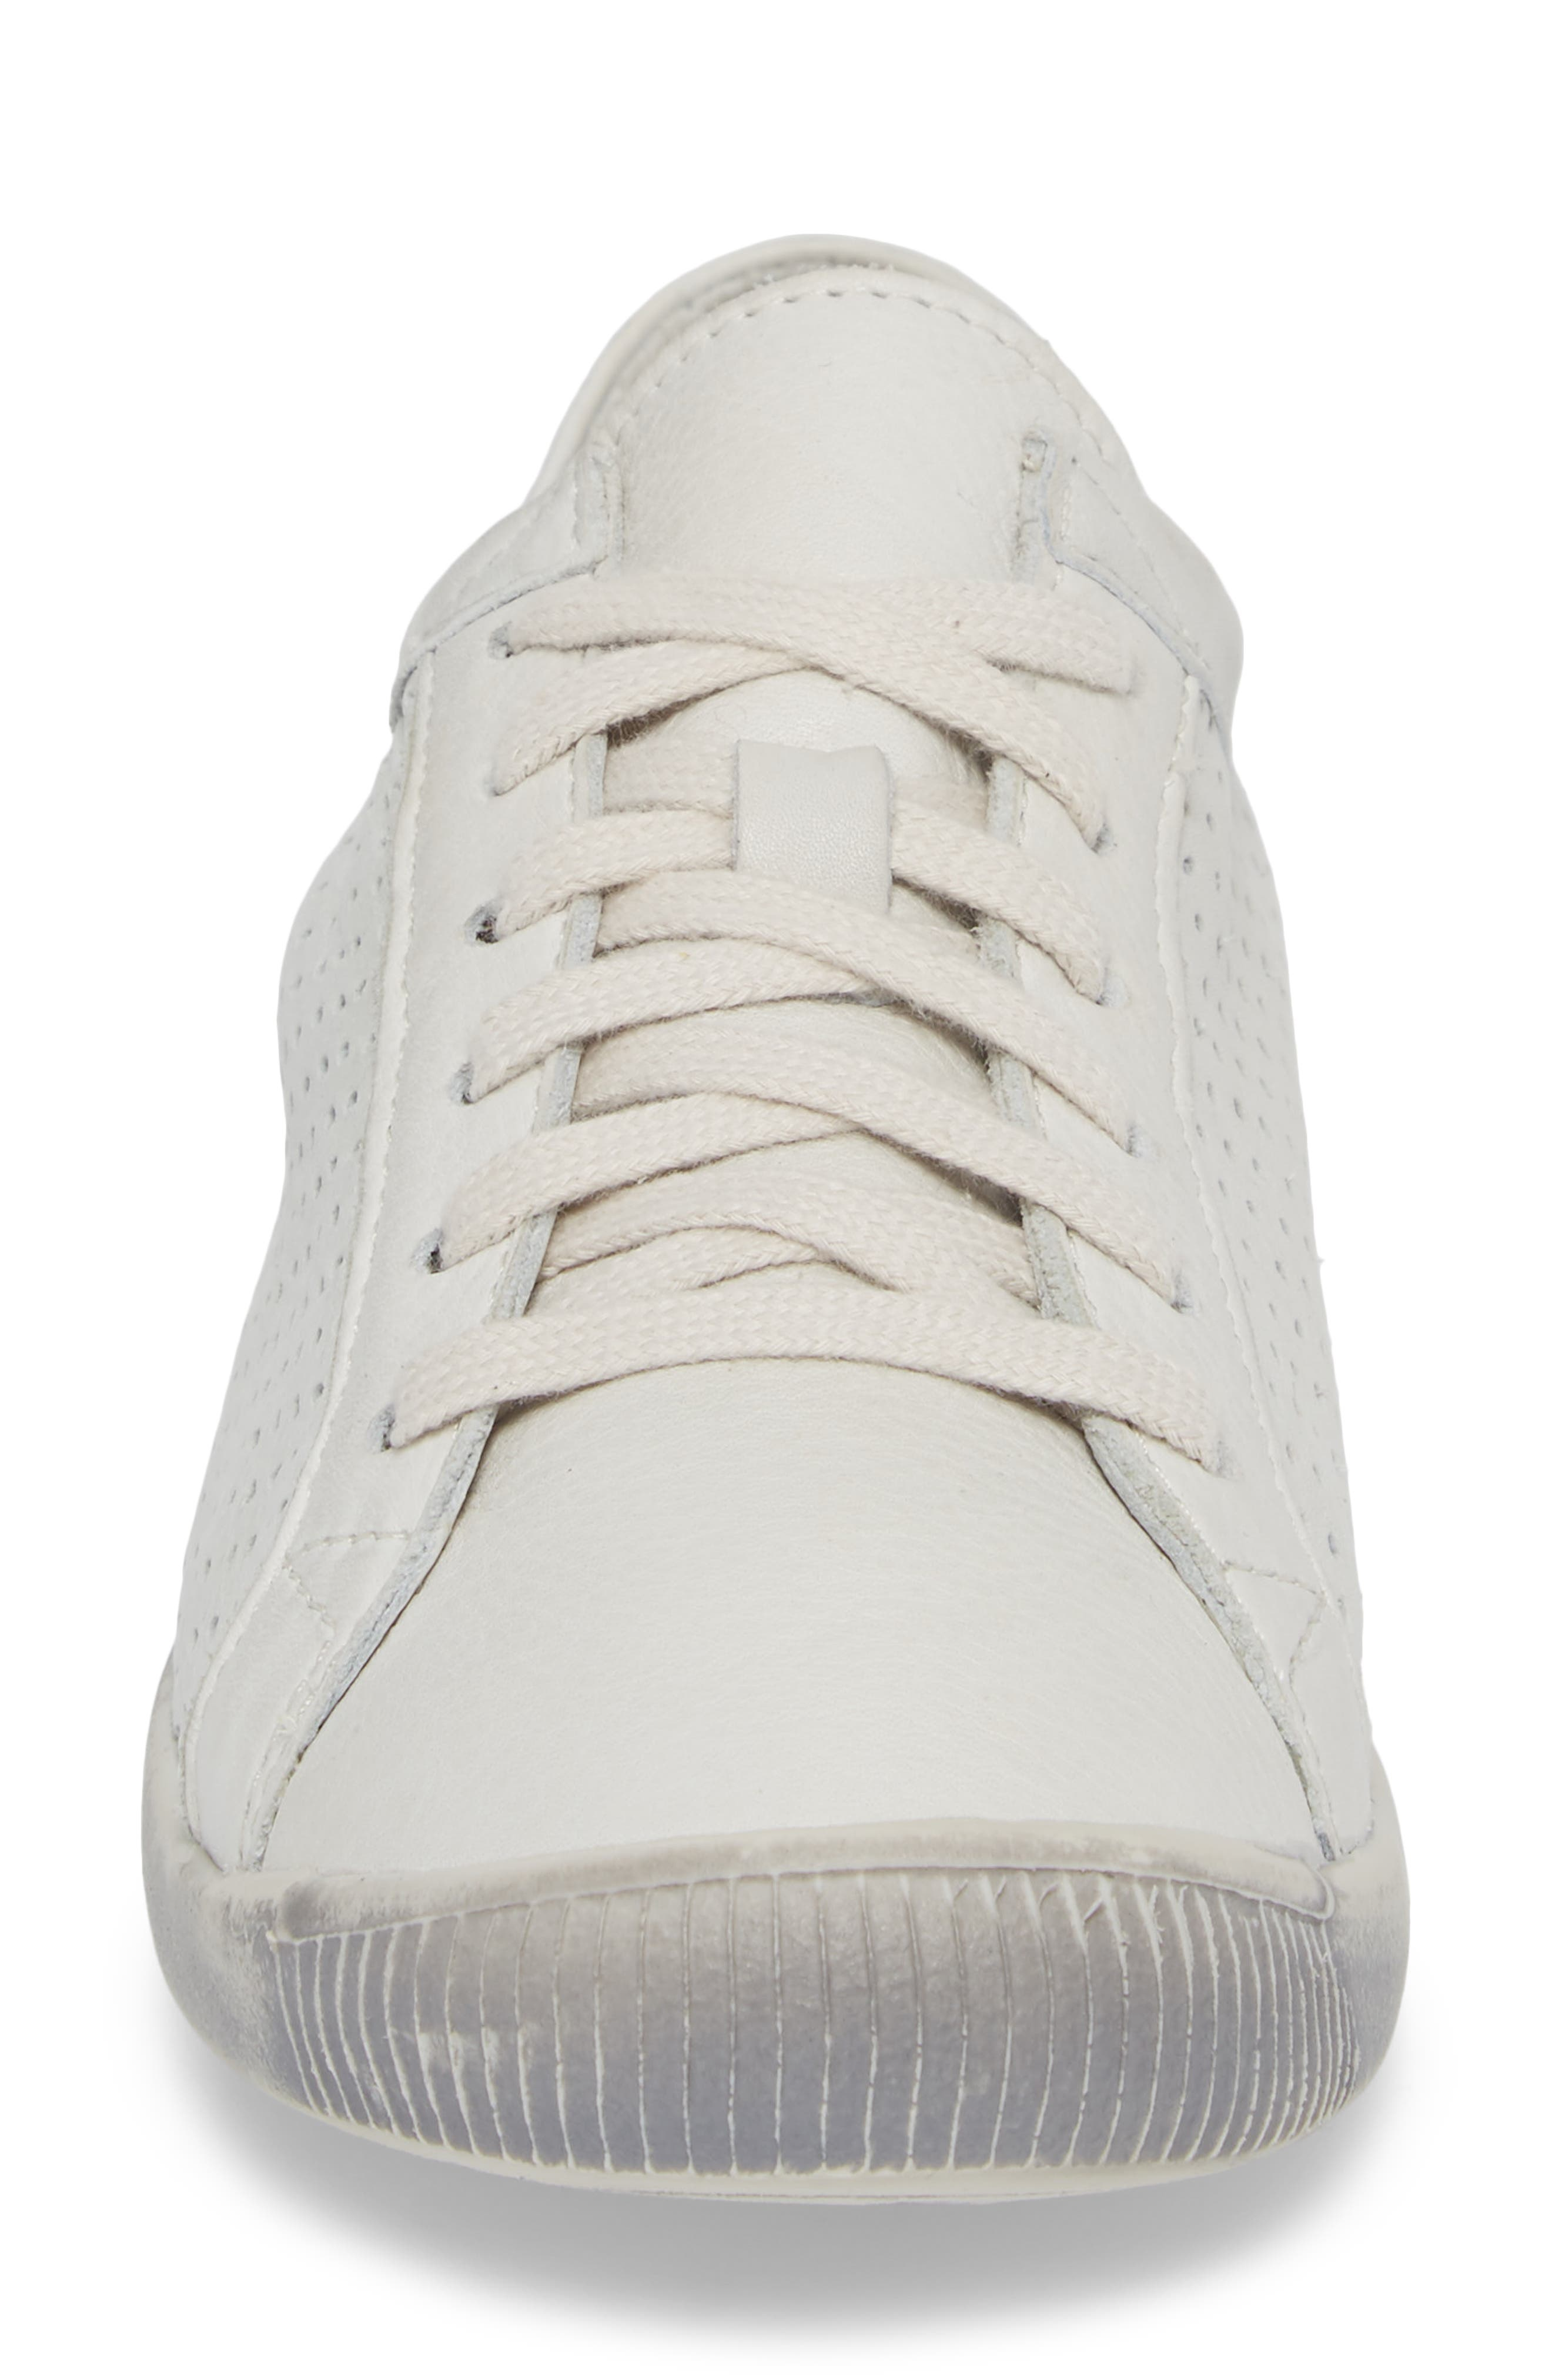 Ica Sneaker,                             Alternate thumbnail 4, color,                             WHITE LEATHER